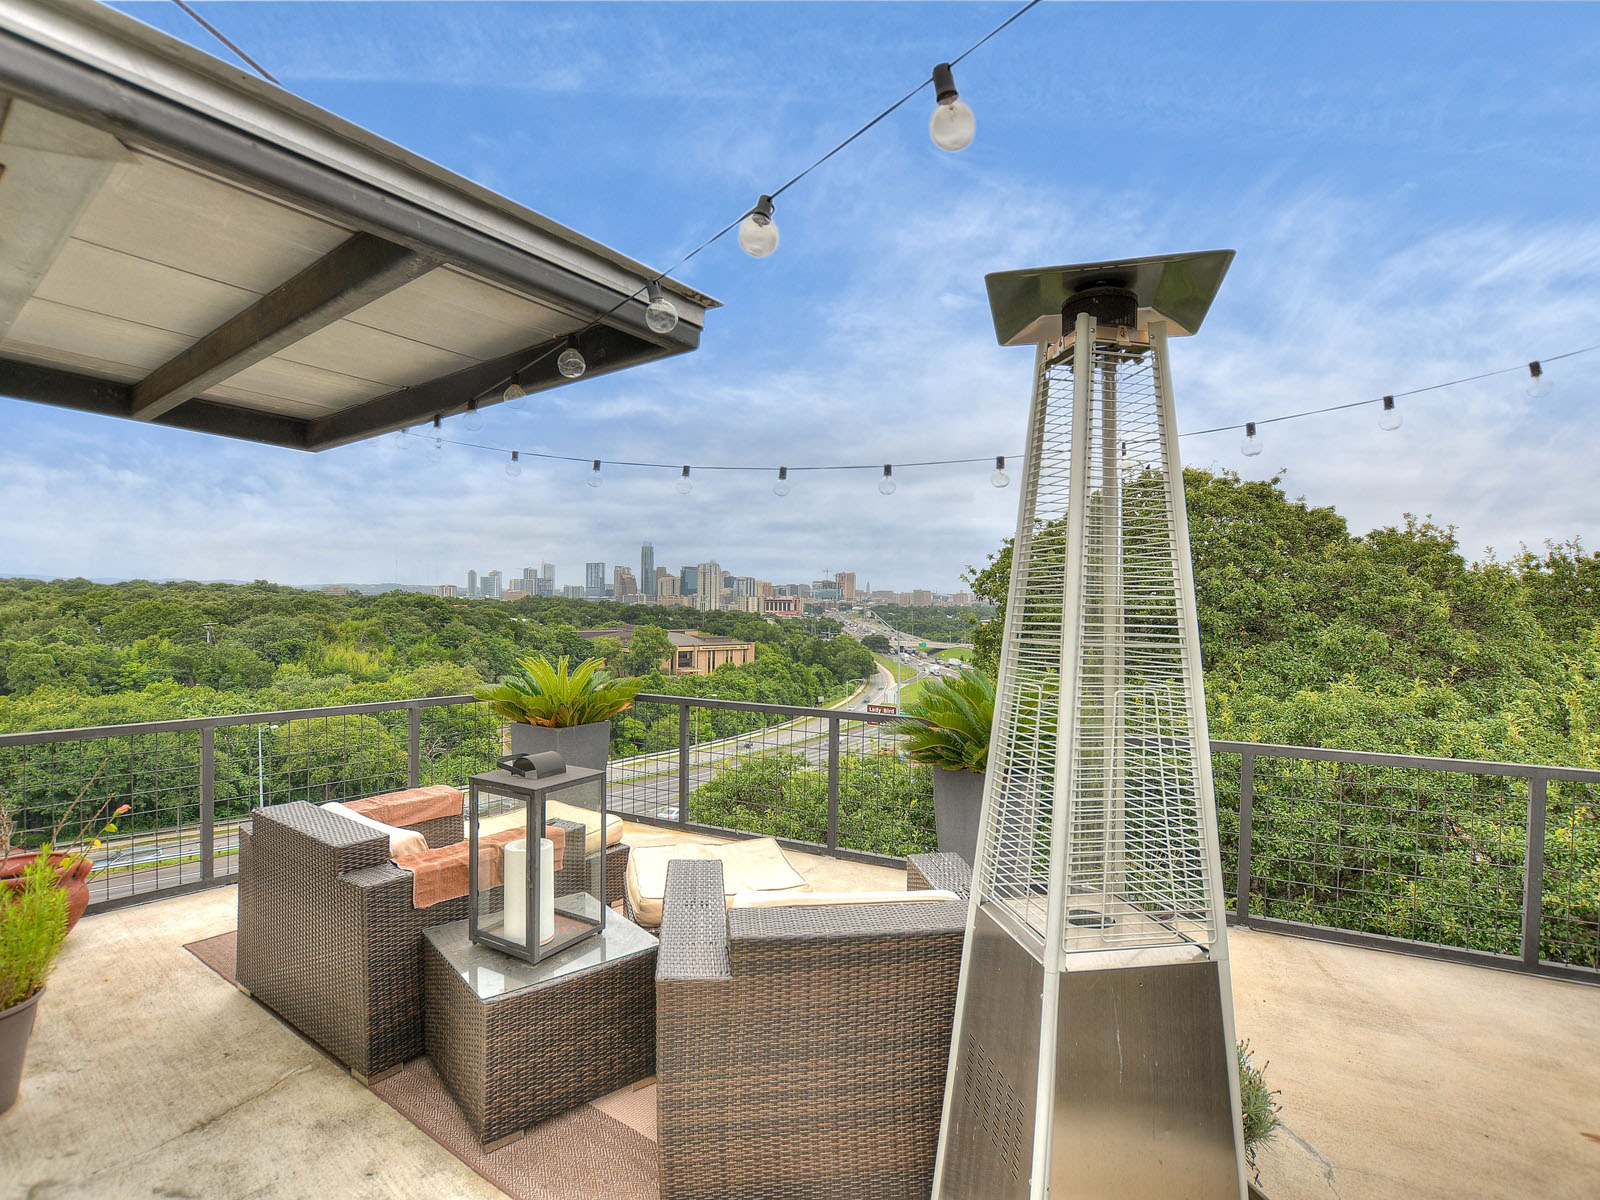 Condominio por un Alquiler en Stunning Views of Downtown Austin 1500 Summit St 4 Austin, Texas 78741 Estados Unidos